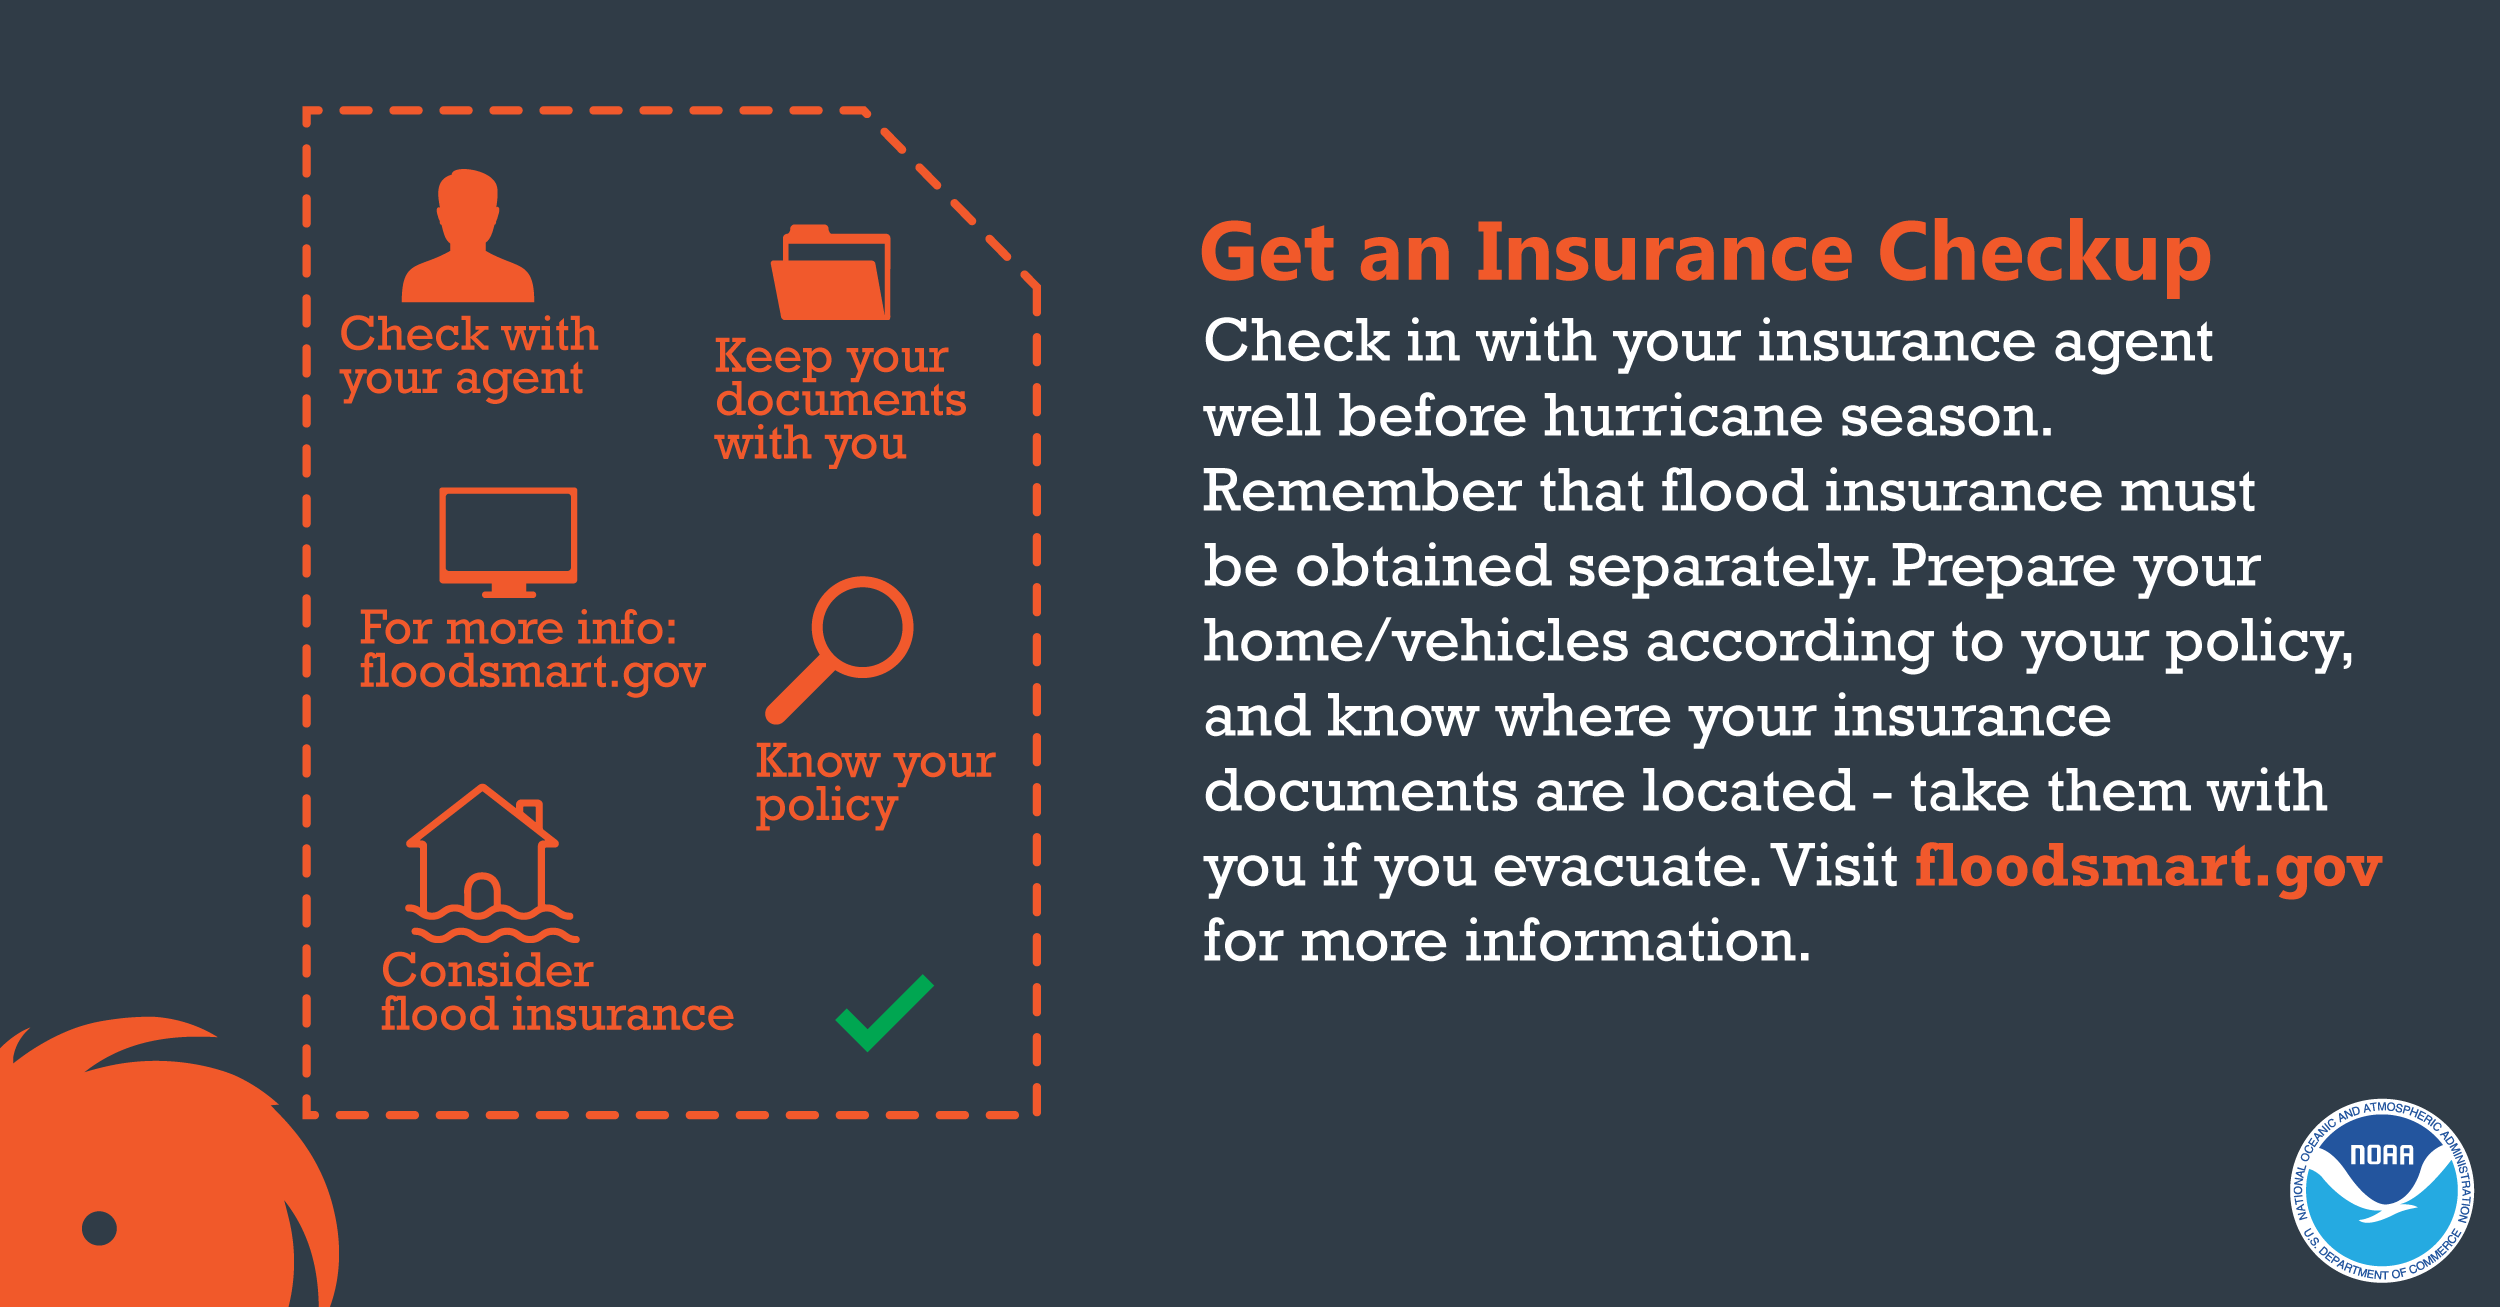 Get an Insurance Checkup: Check in with your insurance agent well before hurricane season. Remember that flood insurance must be obtained separately. Prepare your home/vehicles according to your policy, and know where you insurance documents are located - take them with you if you evacuate. Visit floodsmart.gov for more insurance.